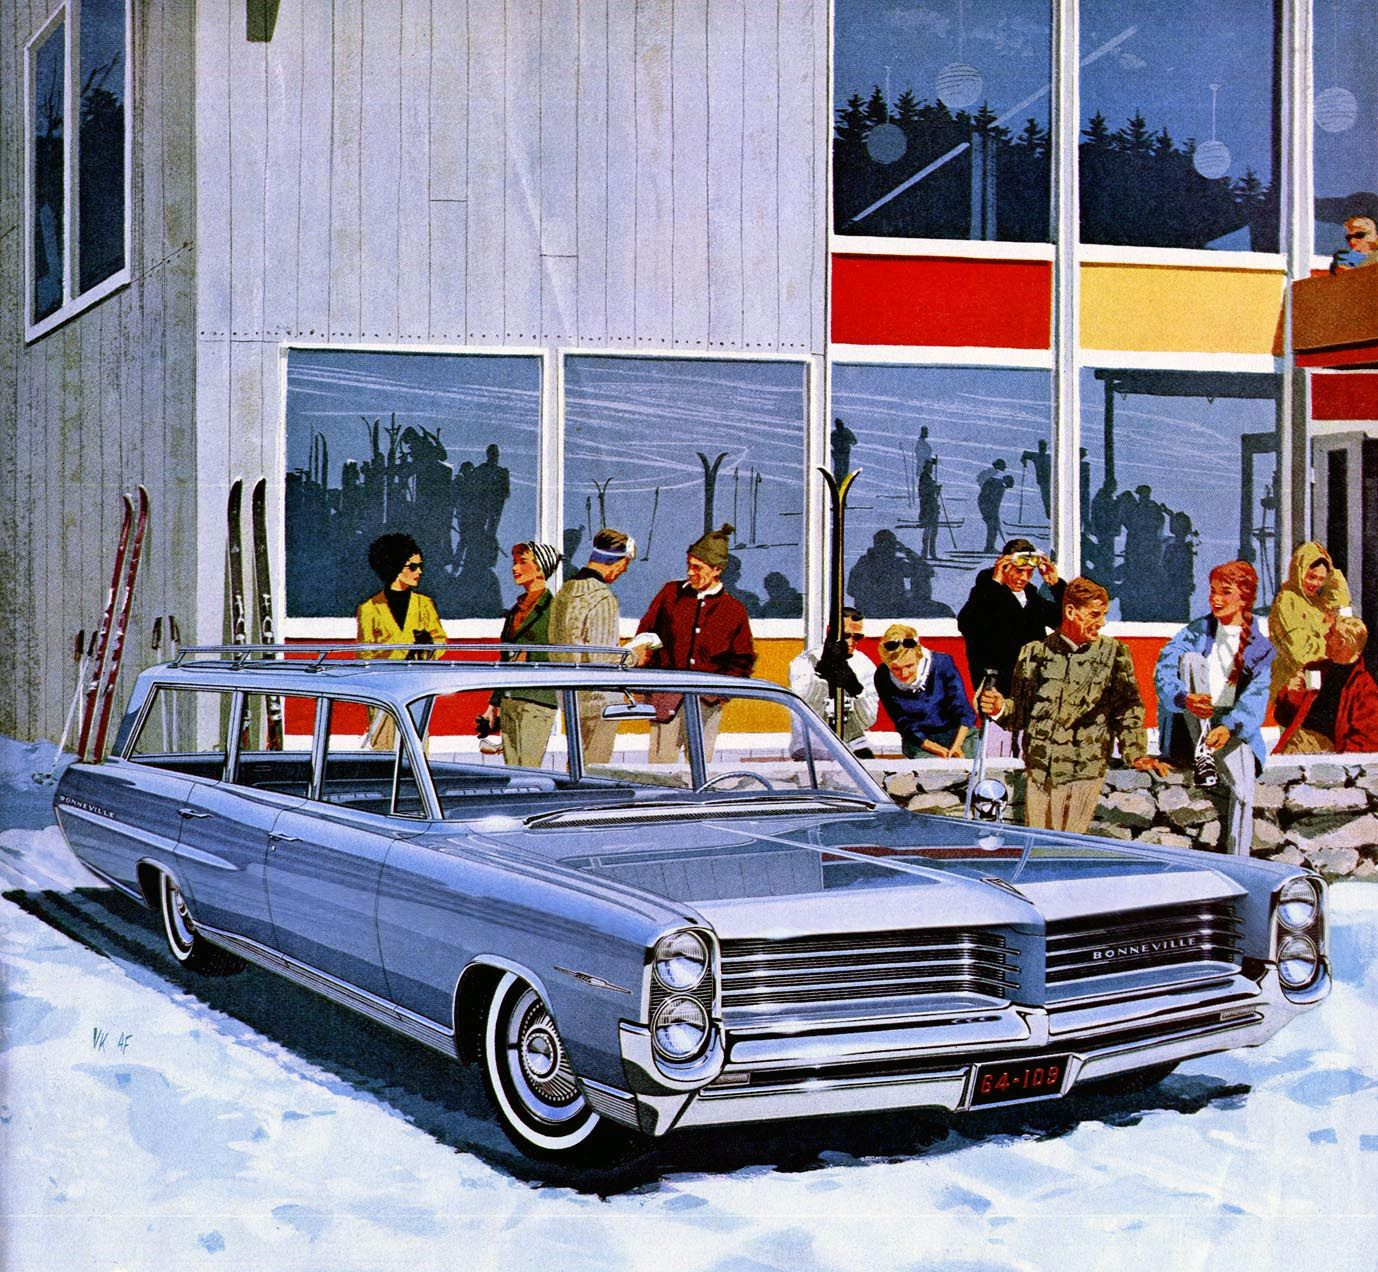 1964 Bonneville Safari - Ski New England